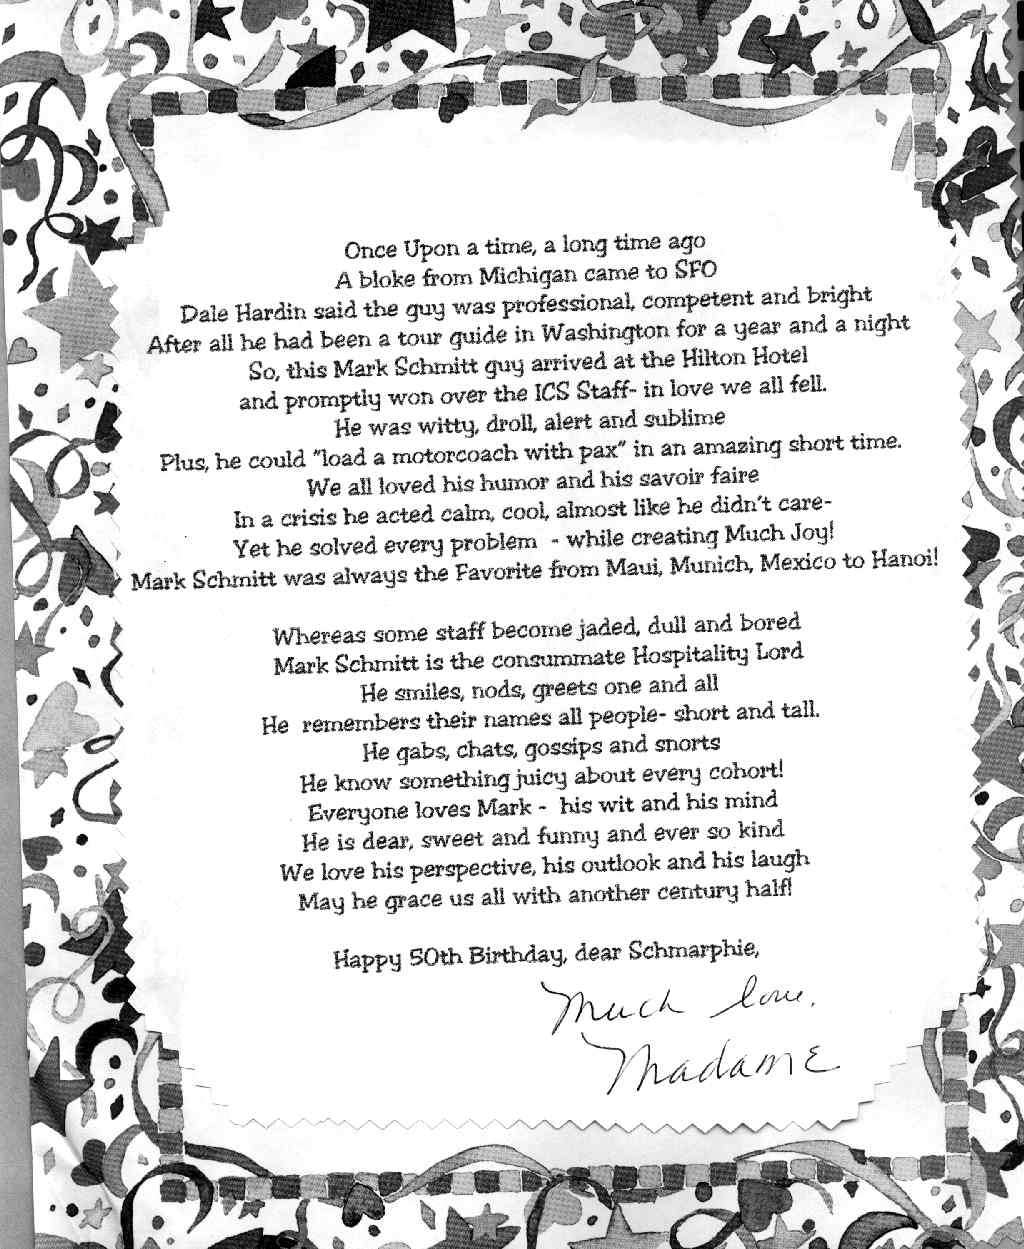 50th Wedding Anniversary Poems For Parents: Briefs Our Music 50th Class Reunion Poem Courtesy Of Dave